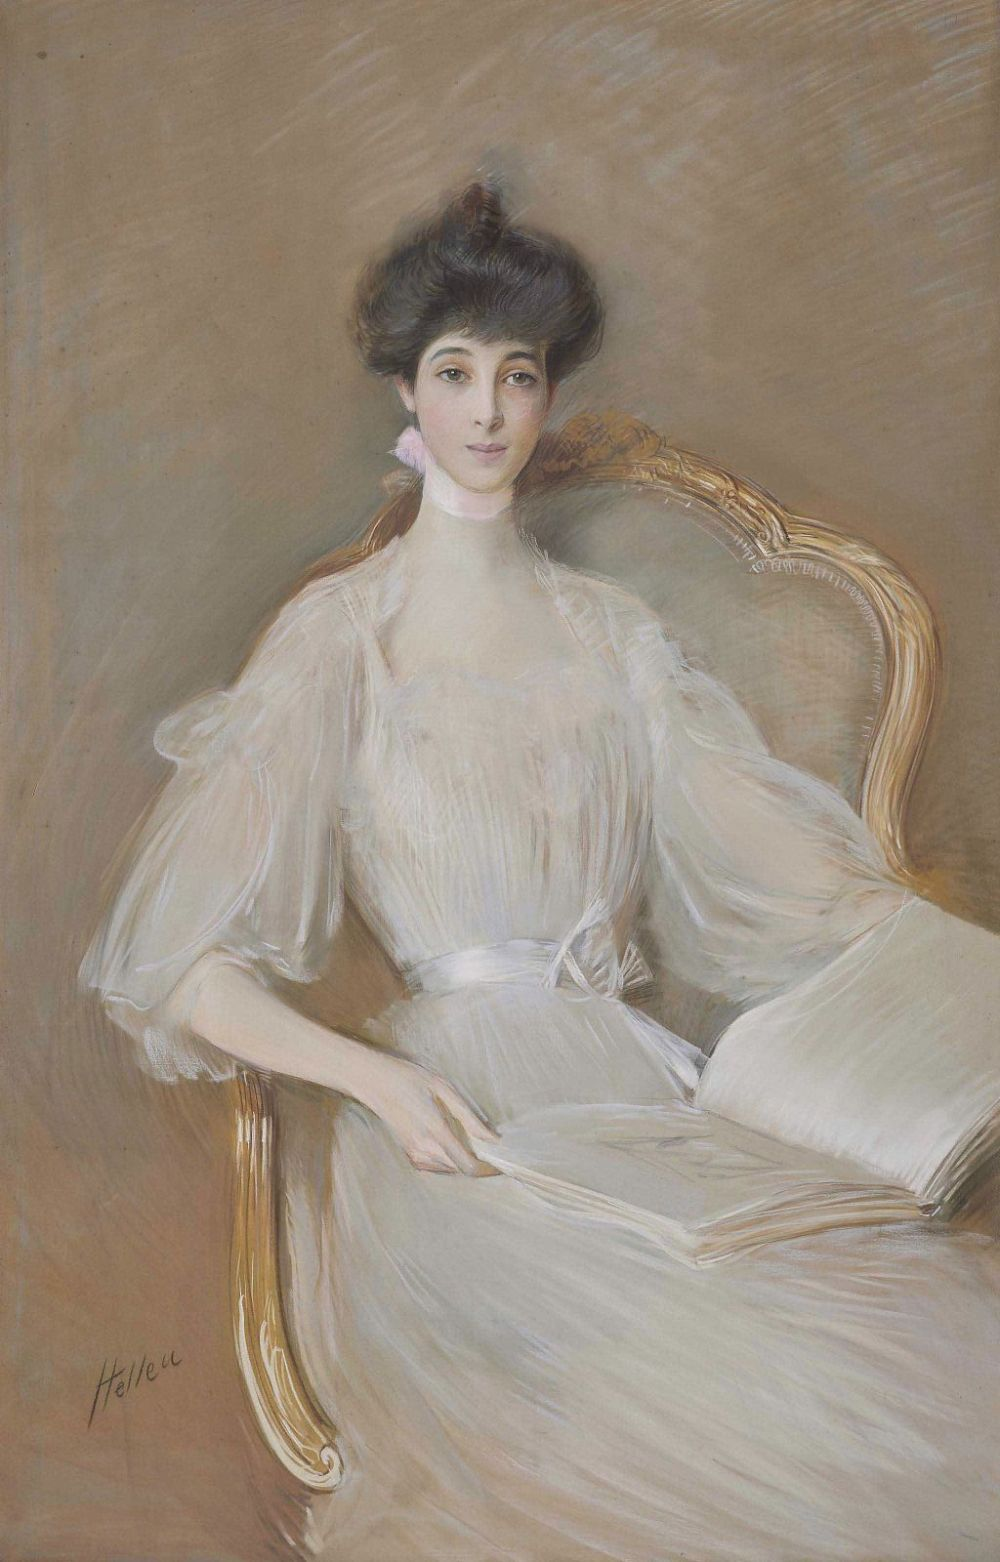 Consuelo Vanderbilt, Duchess of Marlborough by Paul César Helleu